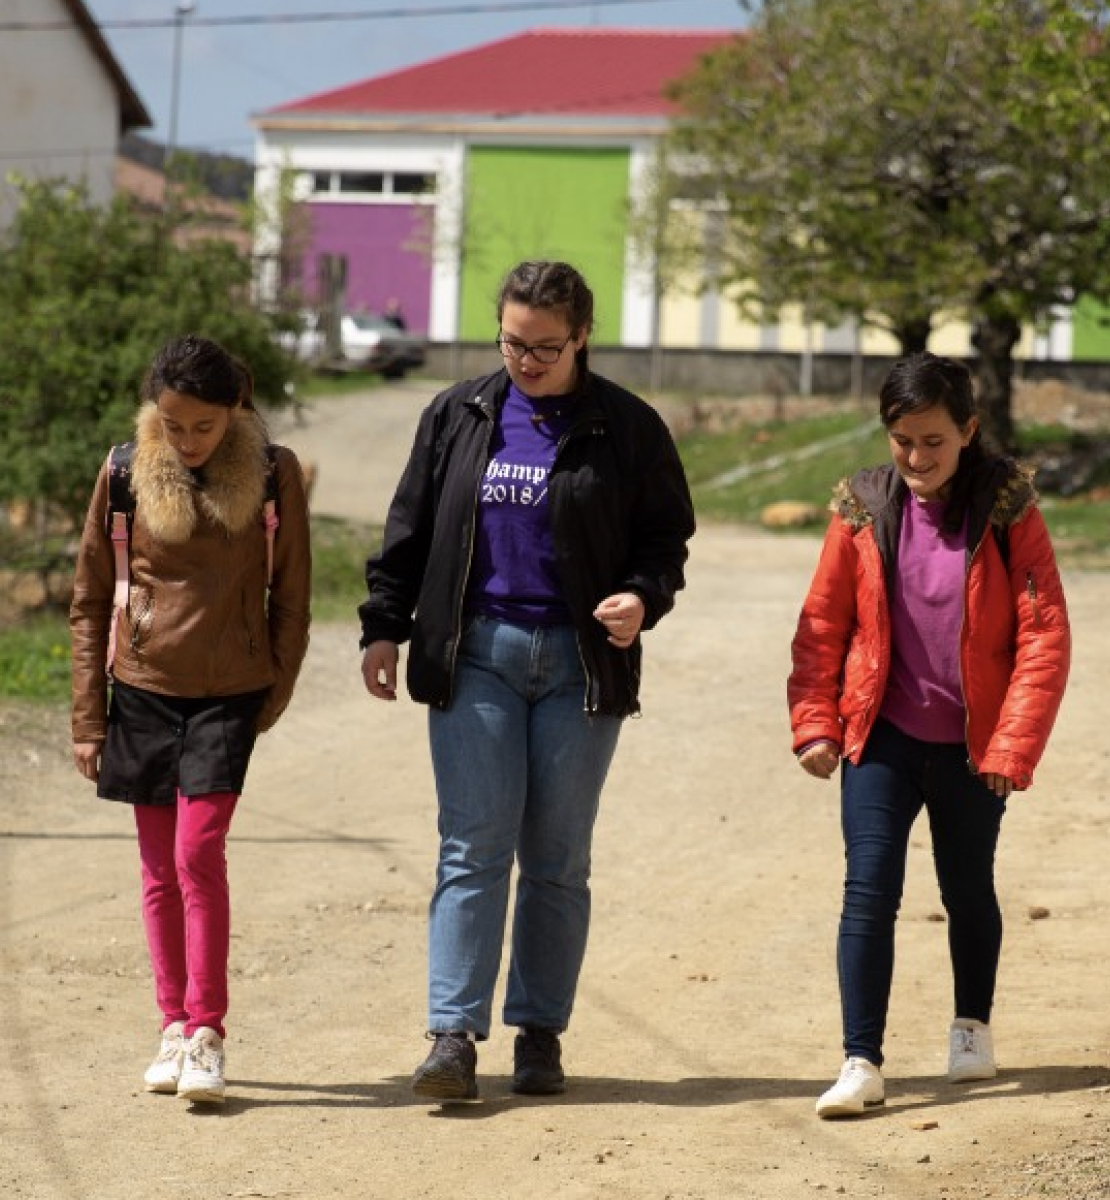 Three young girls walk down a dirt road in jackets.